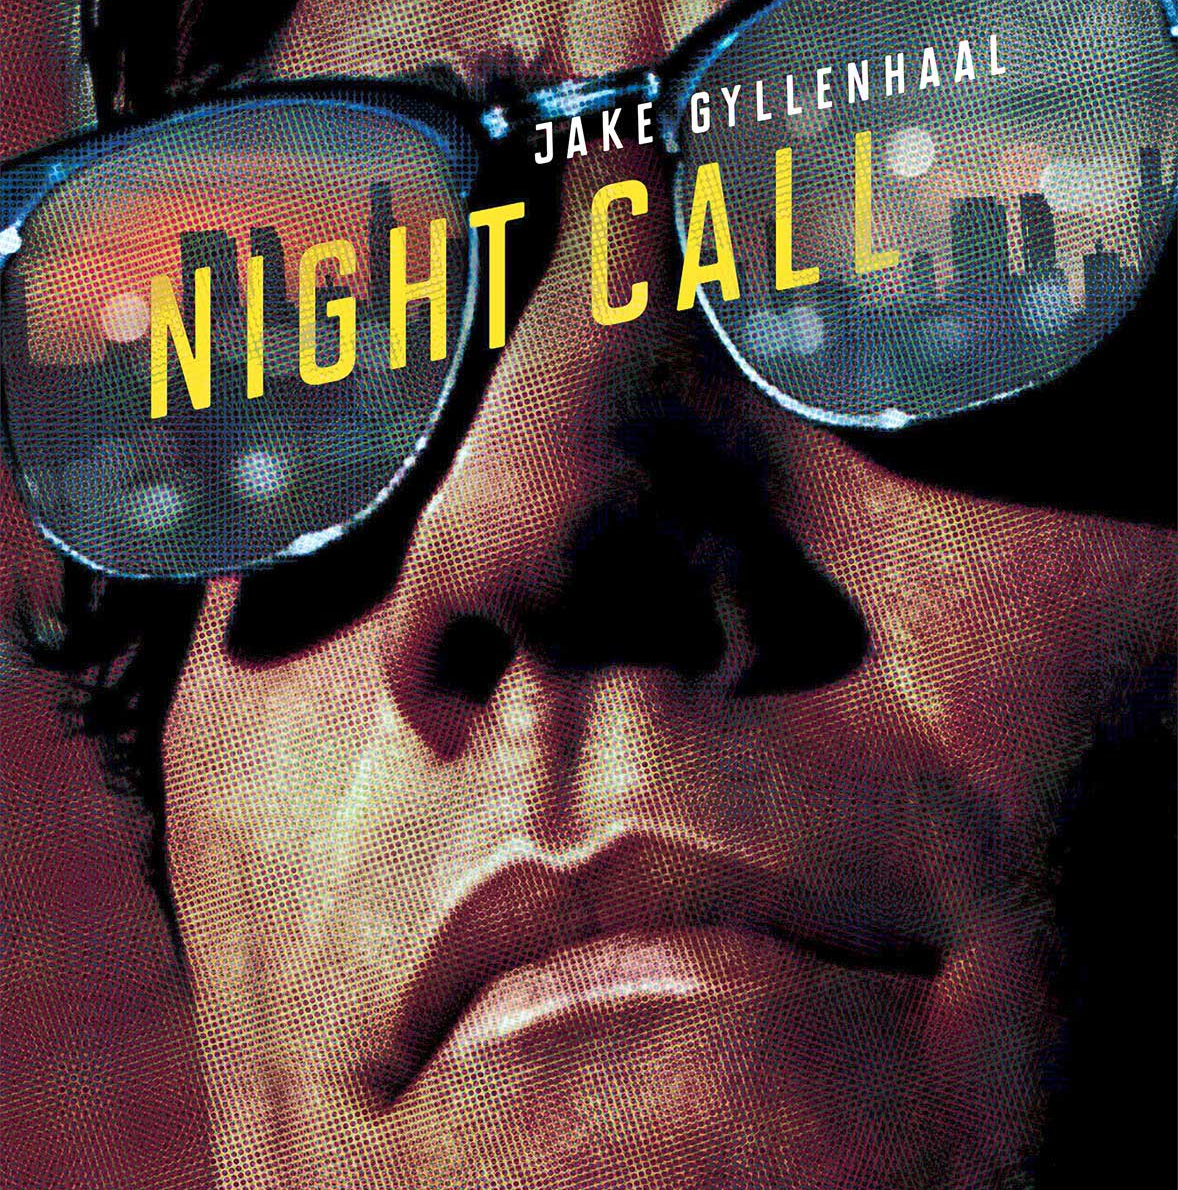 Night Call : un thriller angoissant et acclamé